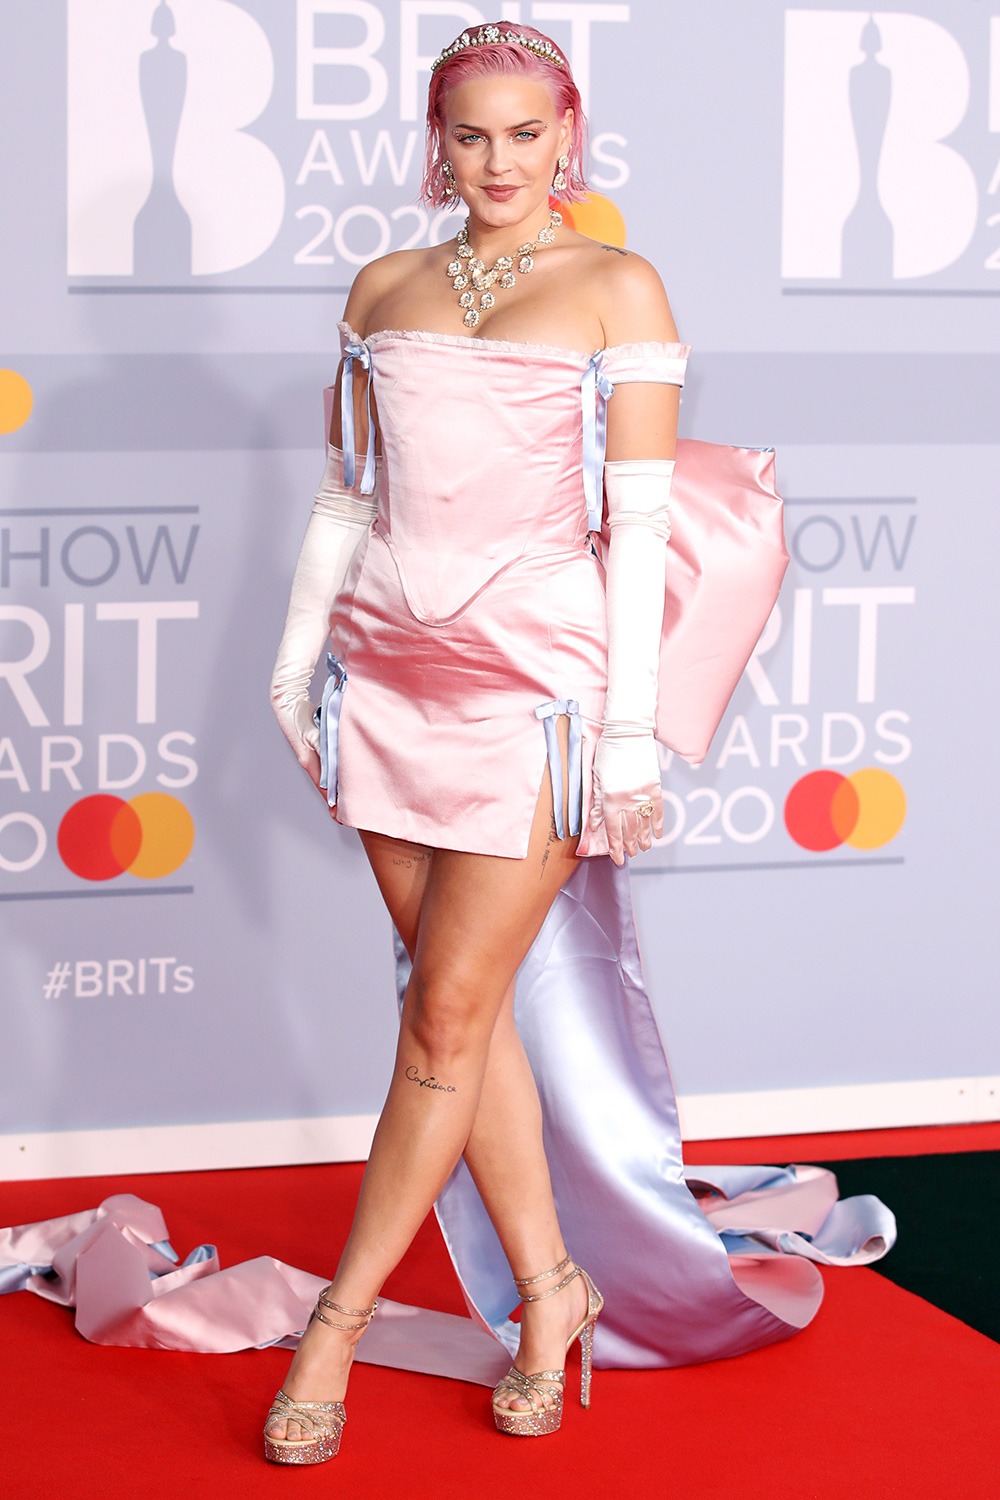 Anne-Marie attends The BRIT Awards 2020